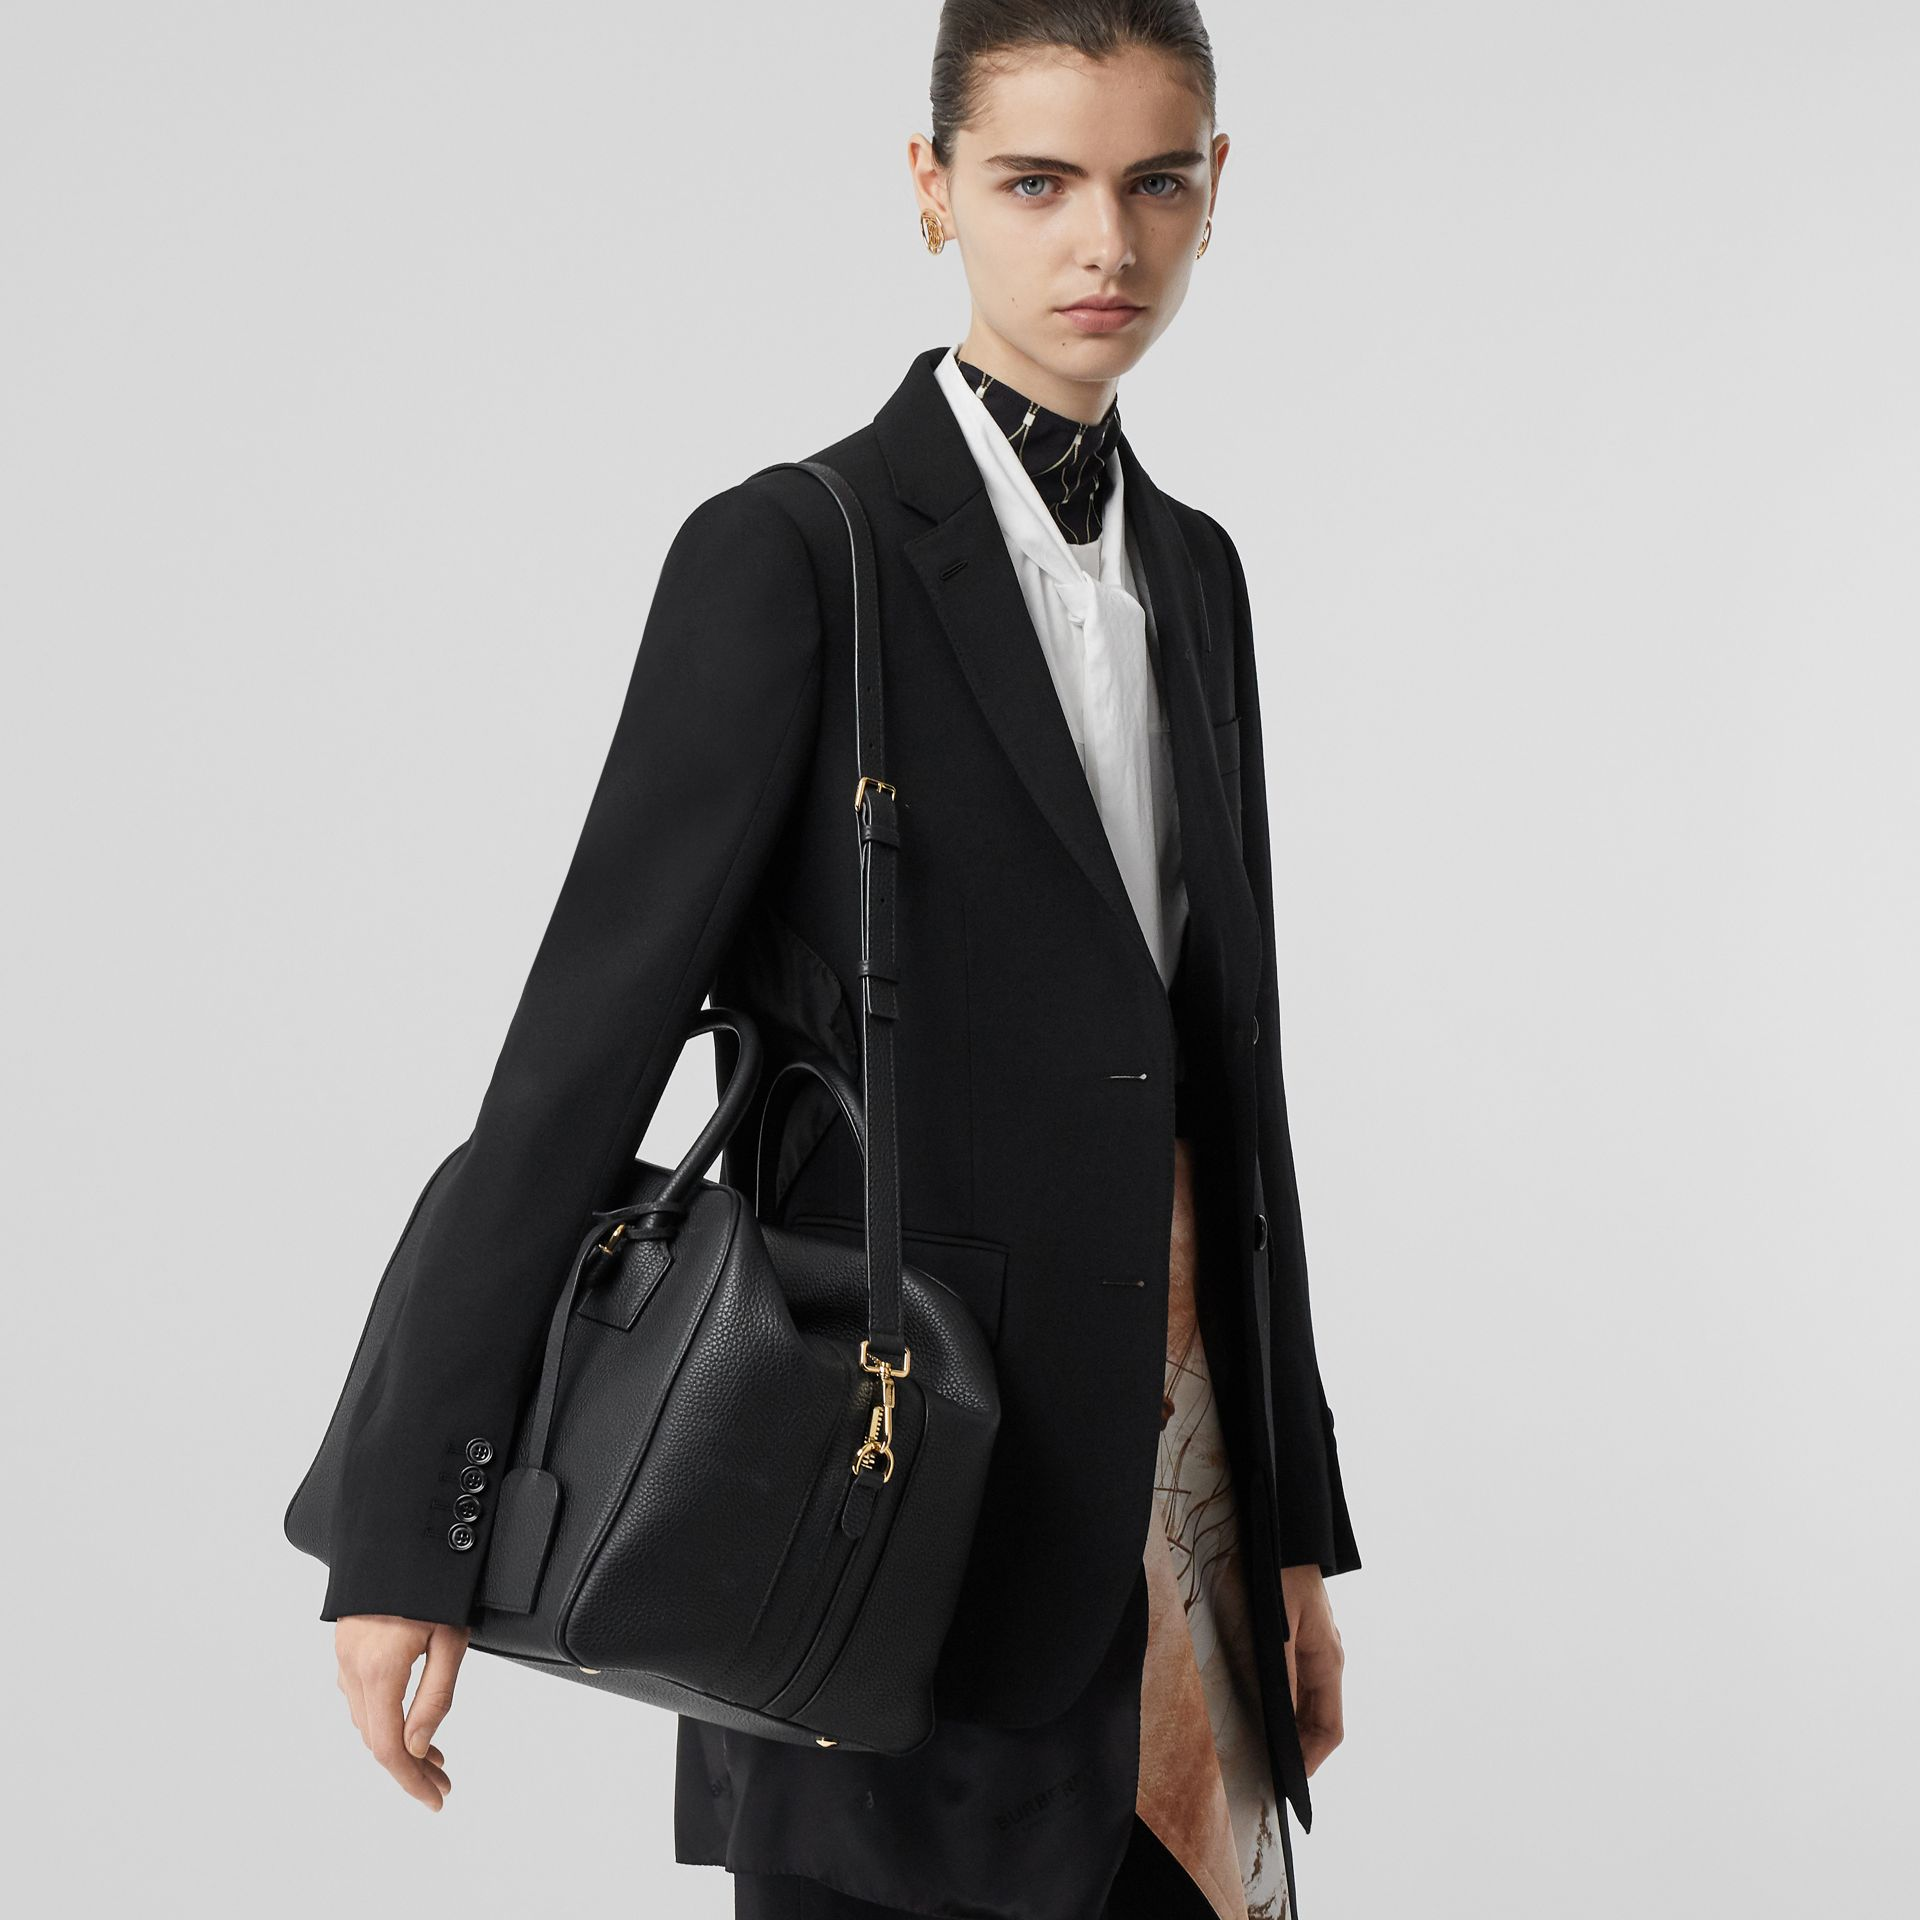 Medium Leather Cube Bag in Black - Women | Burberry Hong Kong S.A.R - gallery image 2